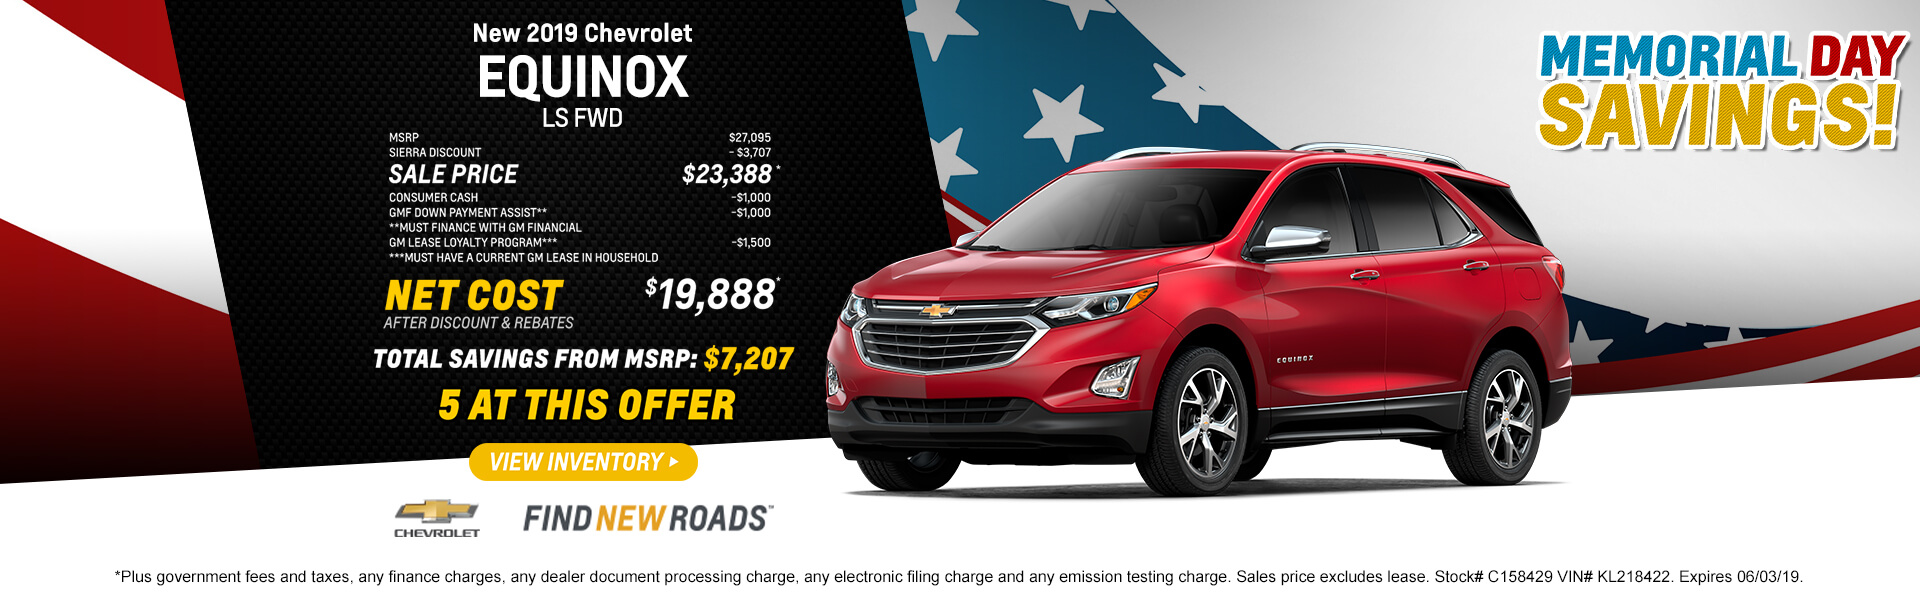 2019 CHEVROLET EQUINOX LS FWD  MSRP $27,095 SIERRA DISCOUNT - $3,707 SALE PRICE $23,388* CONSUMER CASH PROGRAM    -$1,000 DOWN PAYMENT ASSISTANCE** -$1,000 **Must finance with GM Financial GM LEASE LOYALTY PROGRAM*** -$1,500 ***Must have a current GM lease in household   NET COST AFTER DISCOUNT AND REBATES $19,888*  5 at this offer  Total Savings from MSRP $7,207  *Plus government fees and taxes, any finance charges, any dealer document processing charge, any electronic filing charge and any emission testing charge. Sales price excludes lease. Stock# C158429 VIN# KL218422. Expires 06/03/19.